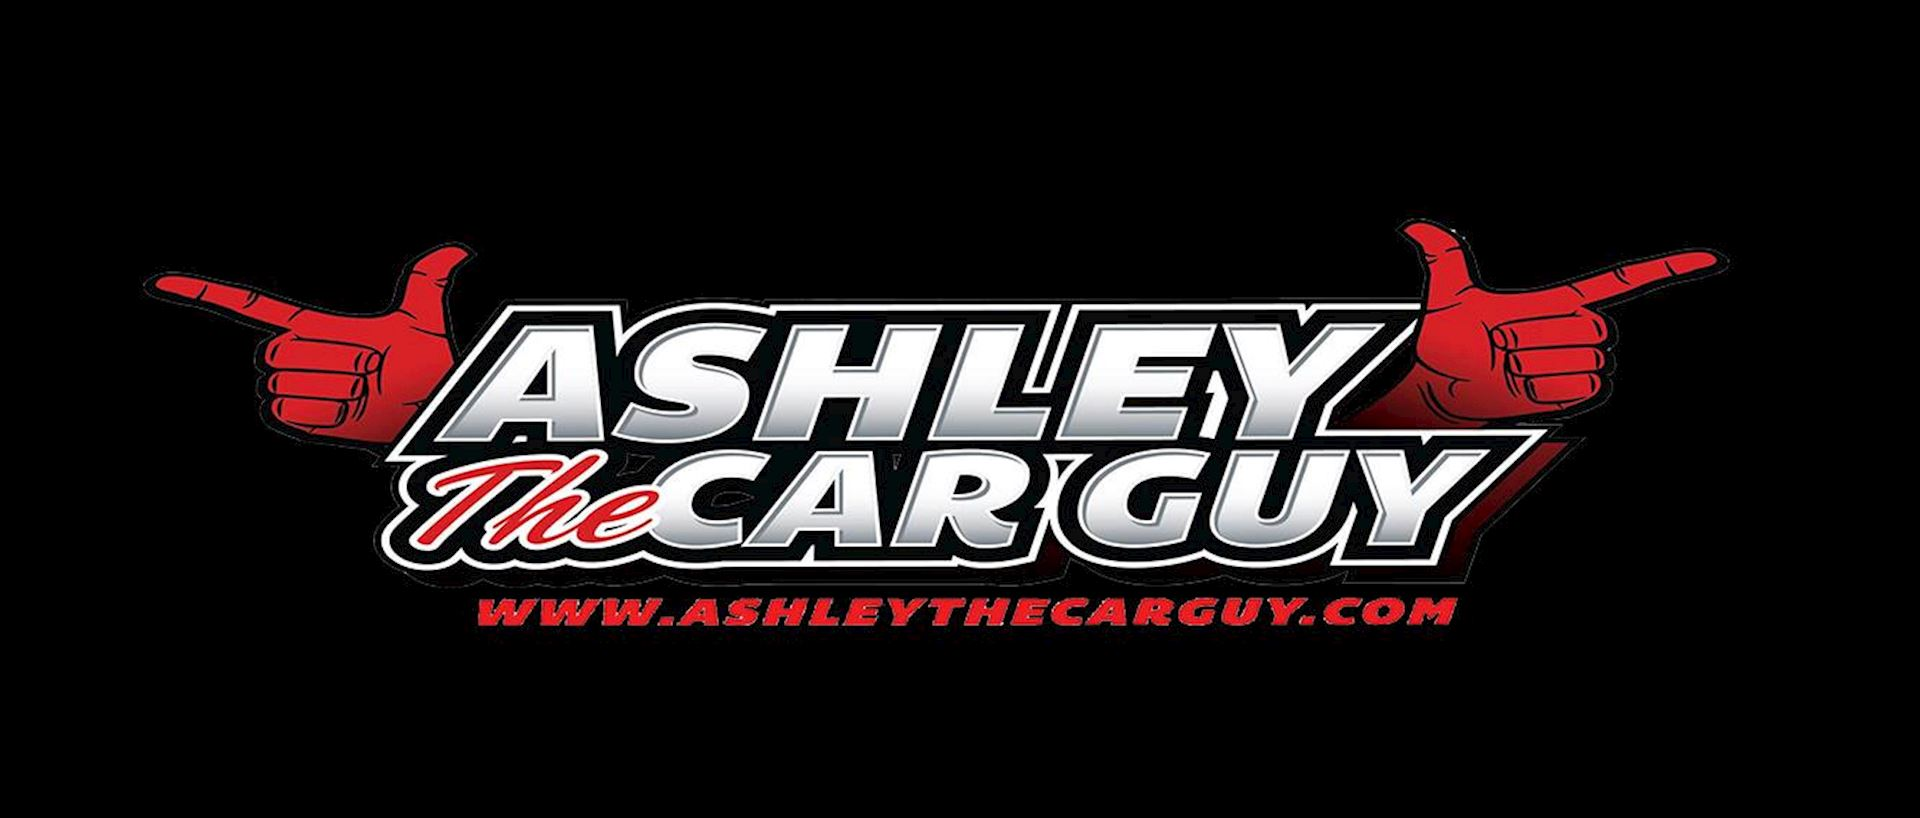 Ashley the Car Guy